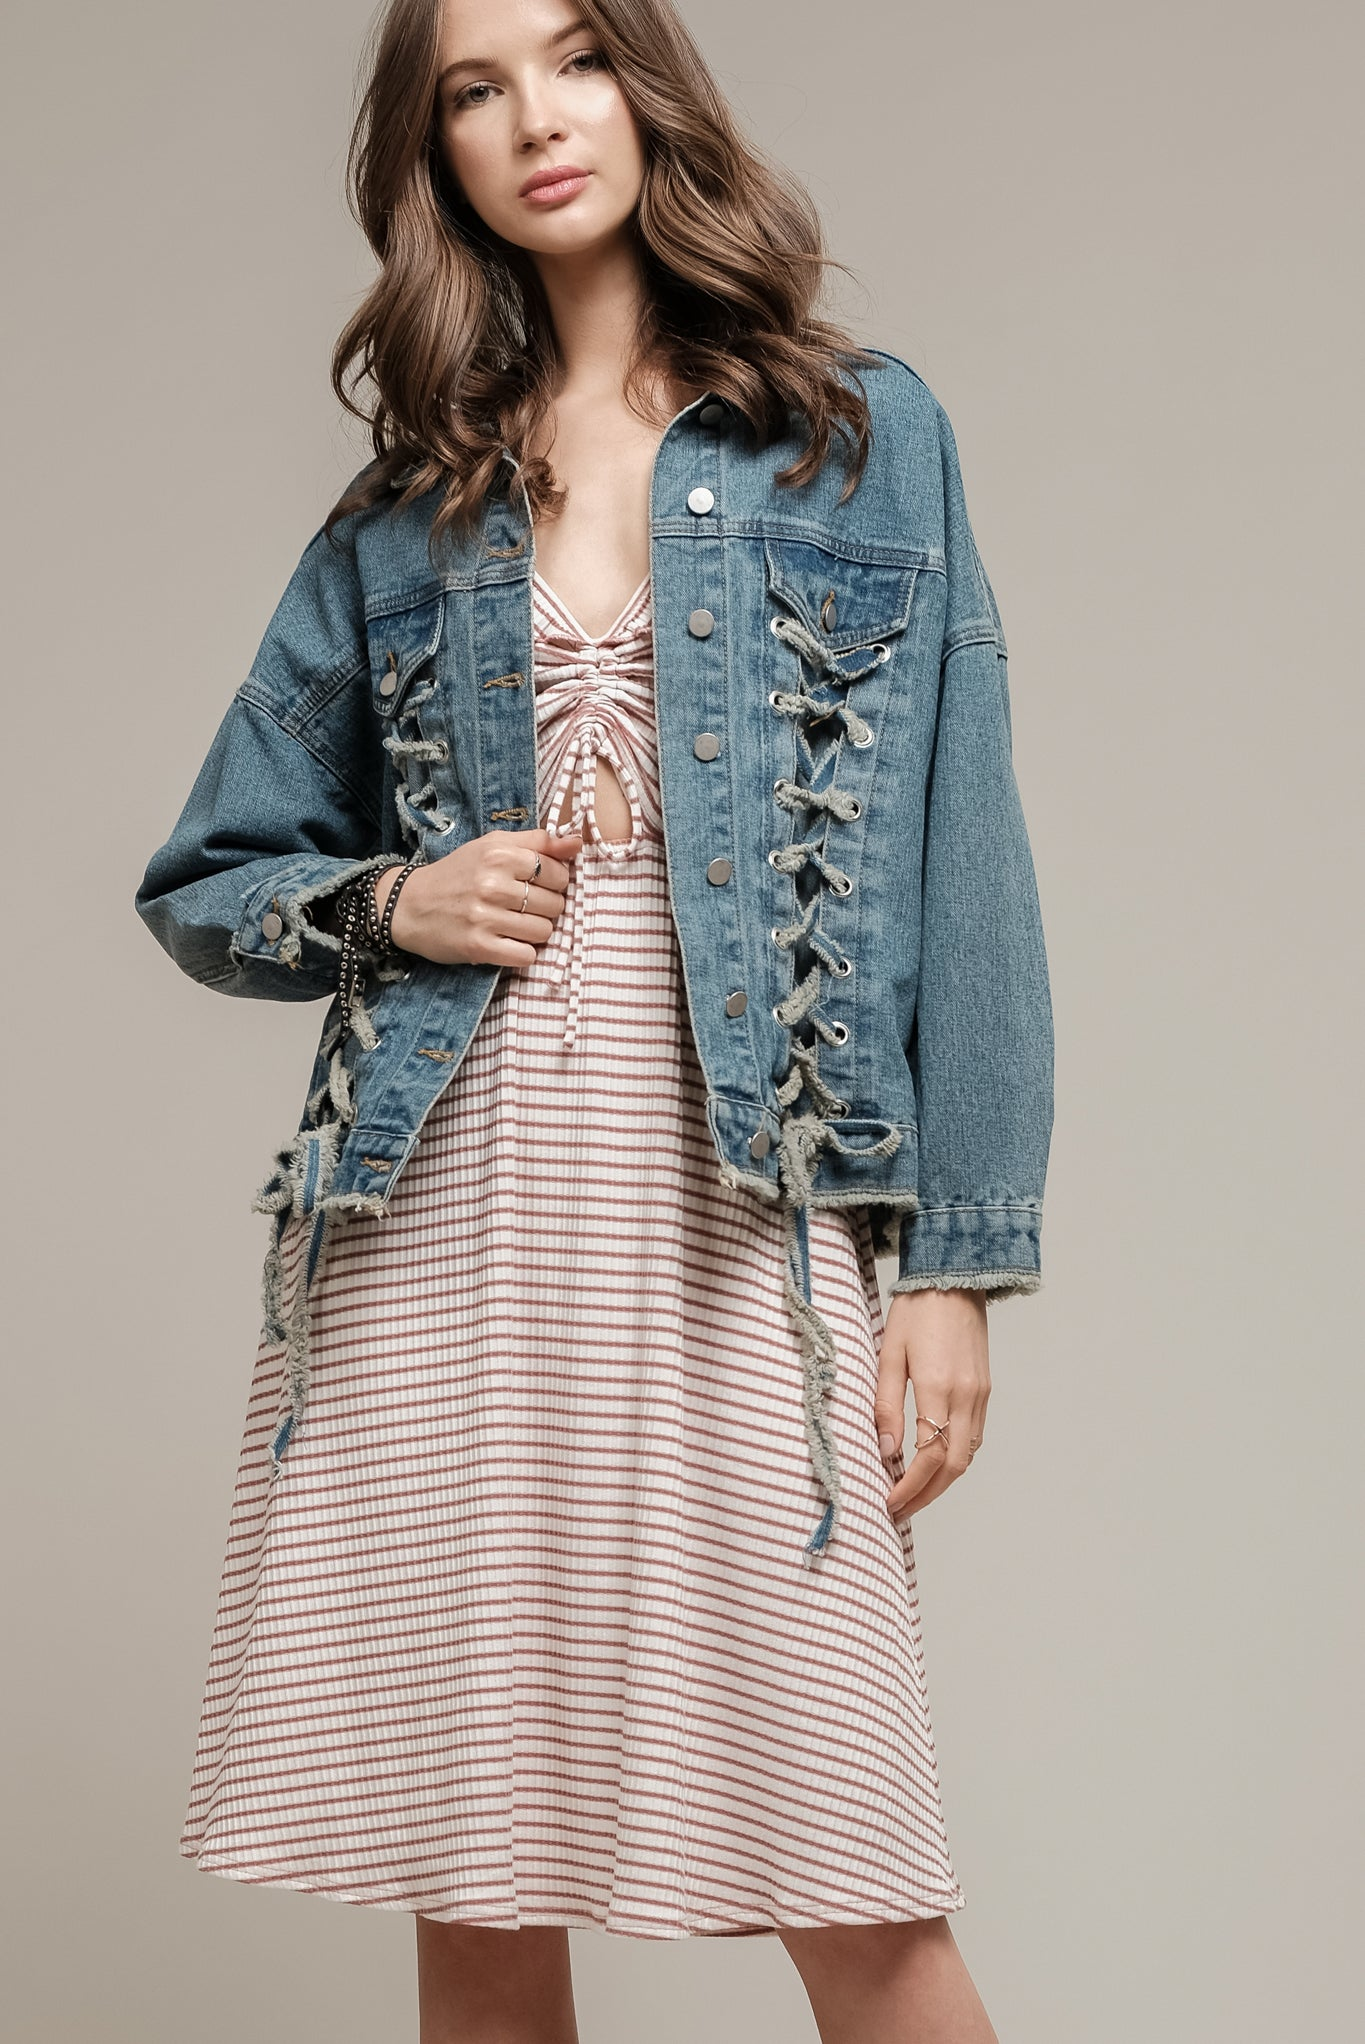 DENIM JACKET WITH LACE UP DETAILS